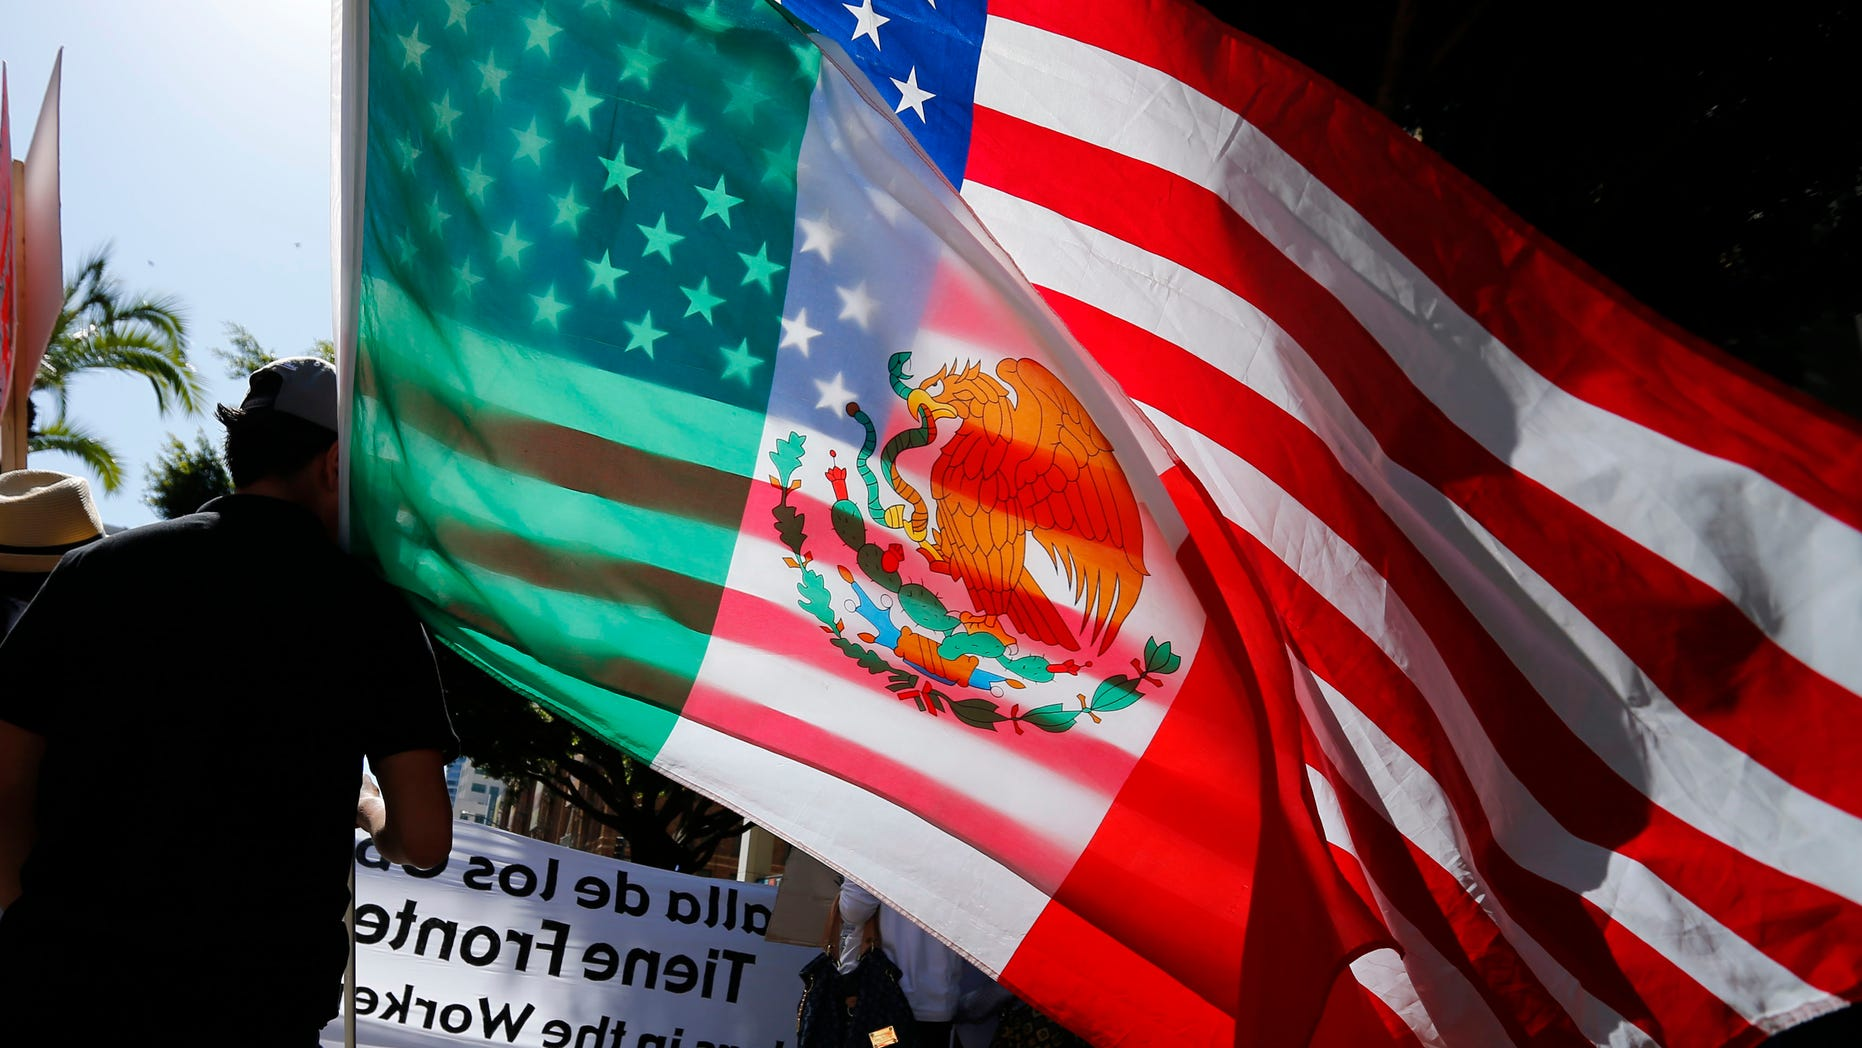 May 1, 2013: A youth carries national flags of the U.S. and Mexico through the streets of San Diego, during a demonstration about workers rights and immigration reform.